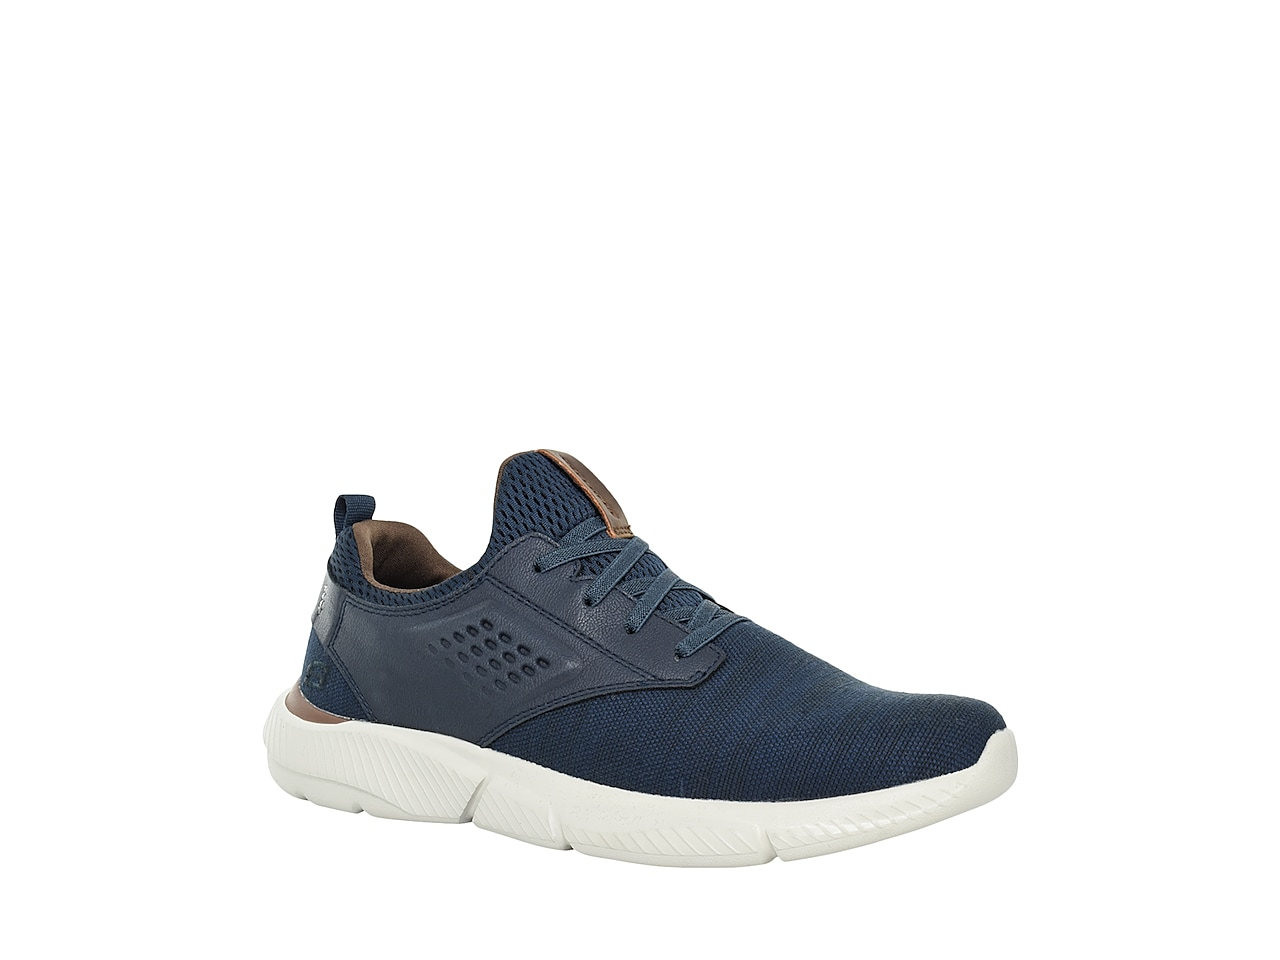 78591afd2ab1d Relaxed Fit: Ingram - Marner Sneaker